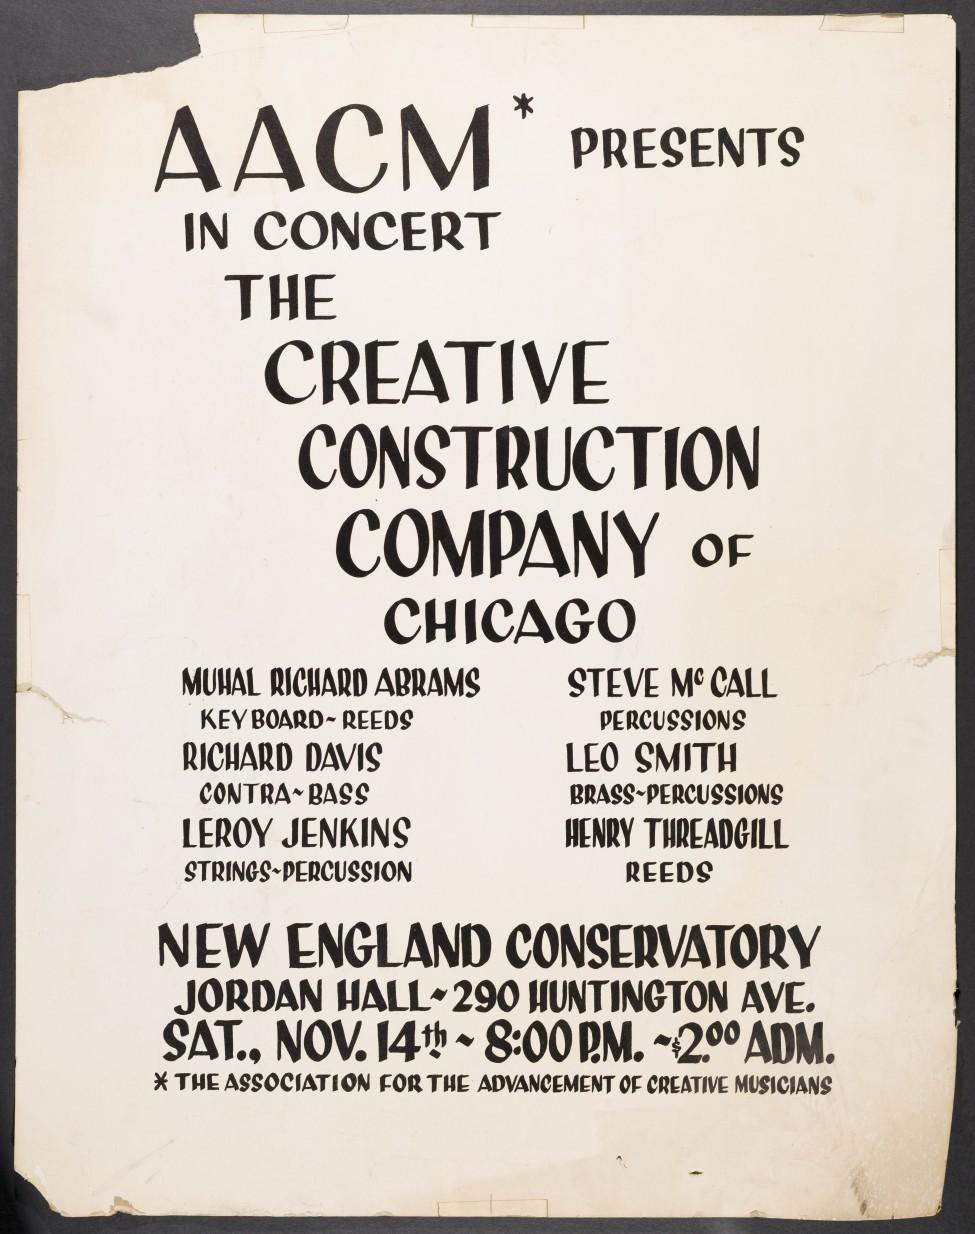 """A yellowed and tattered poster with black text reads, """"AACM presents in concert The Creative Construction Company of Chicago"""" at the New England Conservatory on Saturday, November 14th at 8 pm for 2 dollar admission."""